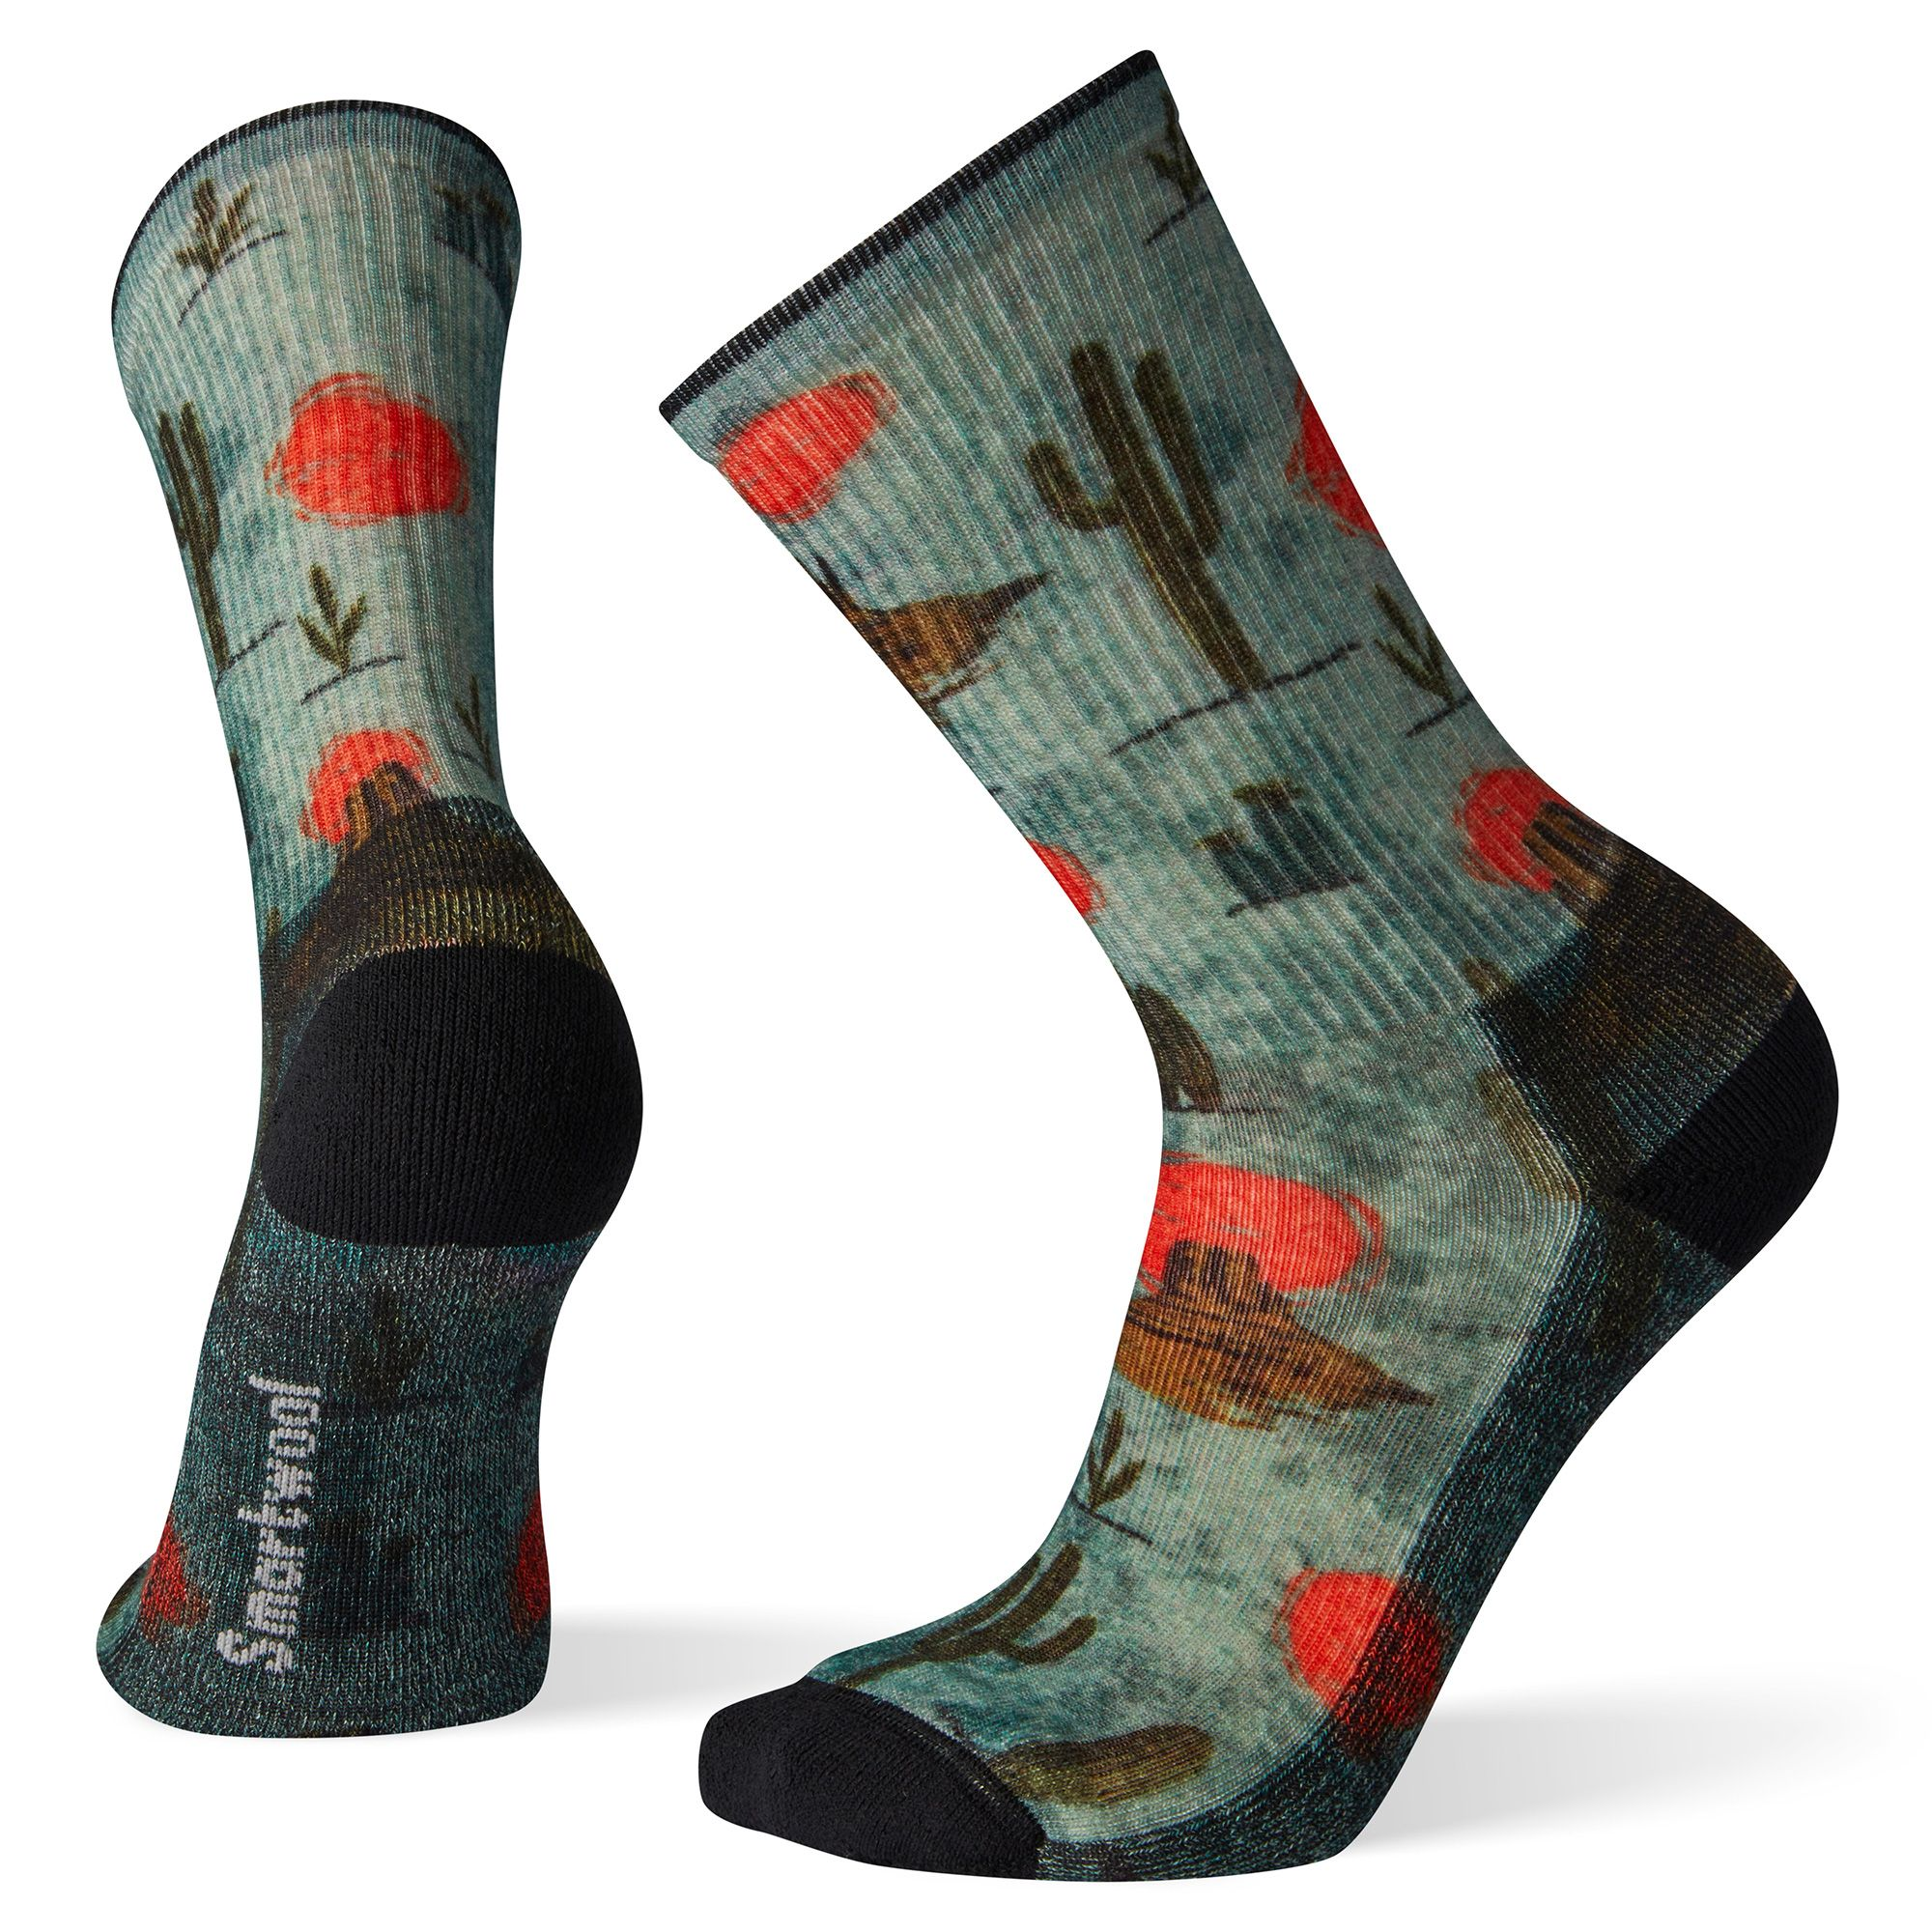 Hike Light Desert Solitaire Print Crew Socks